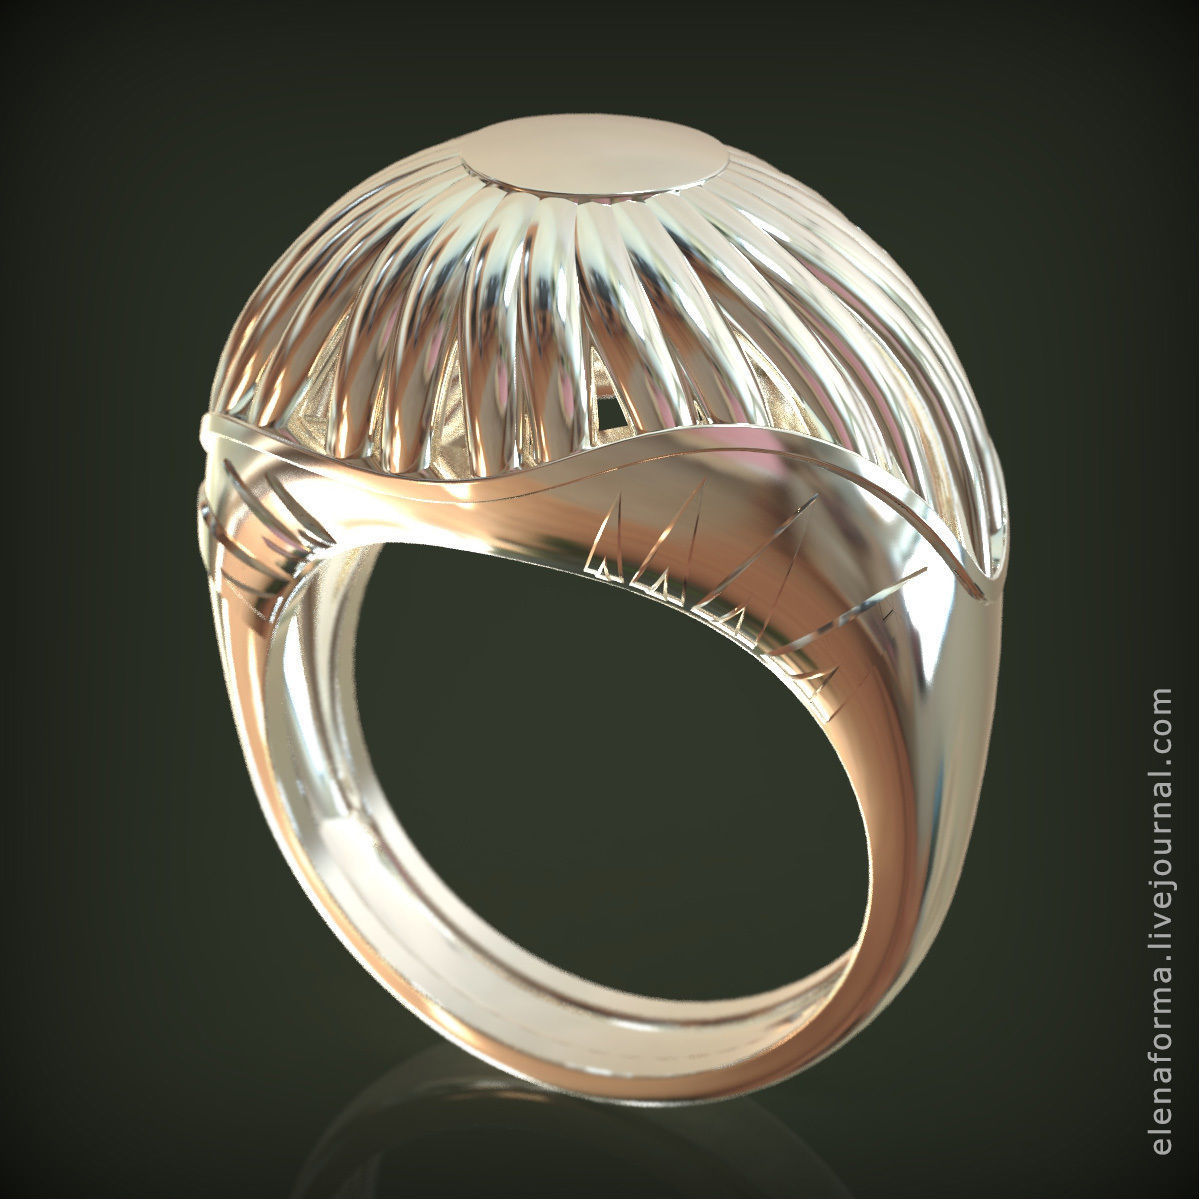 Ring in art Deco style with sun flower